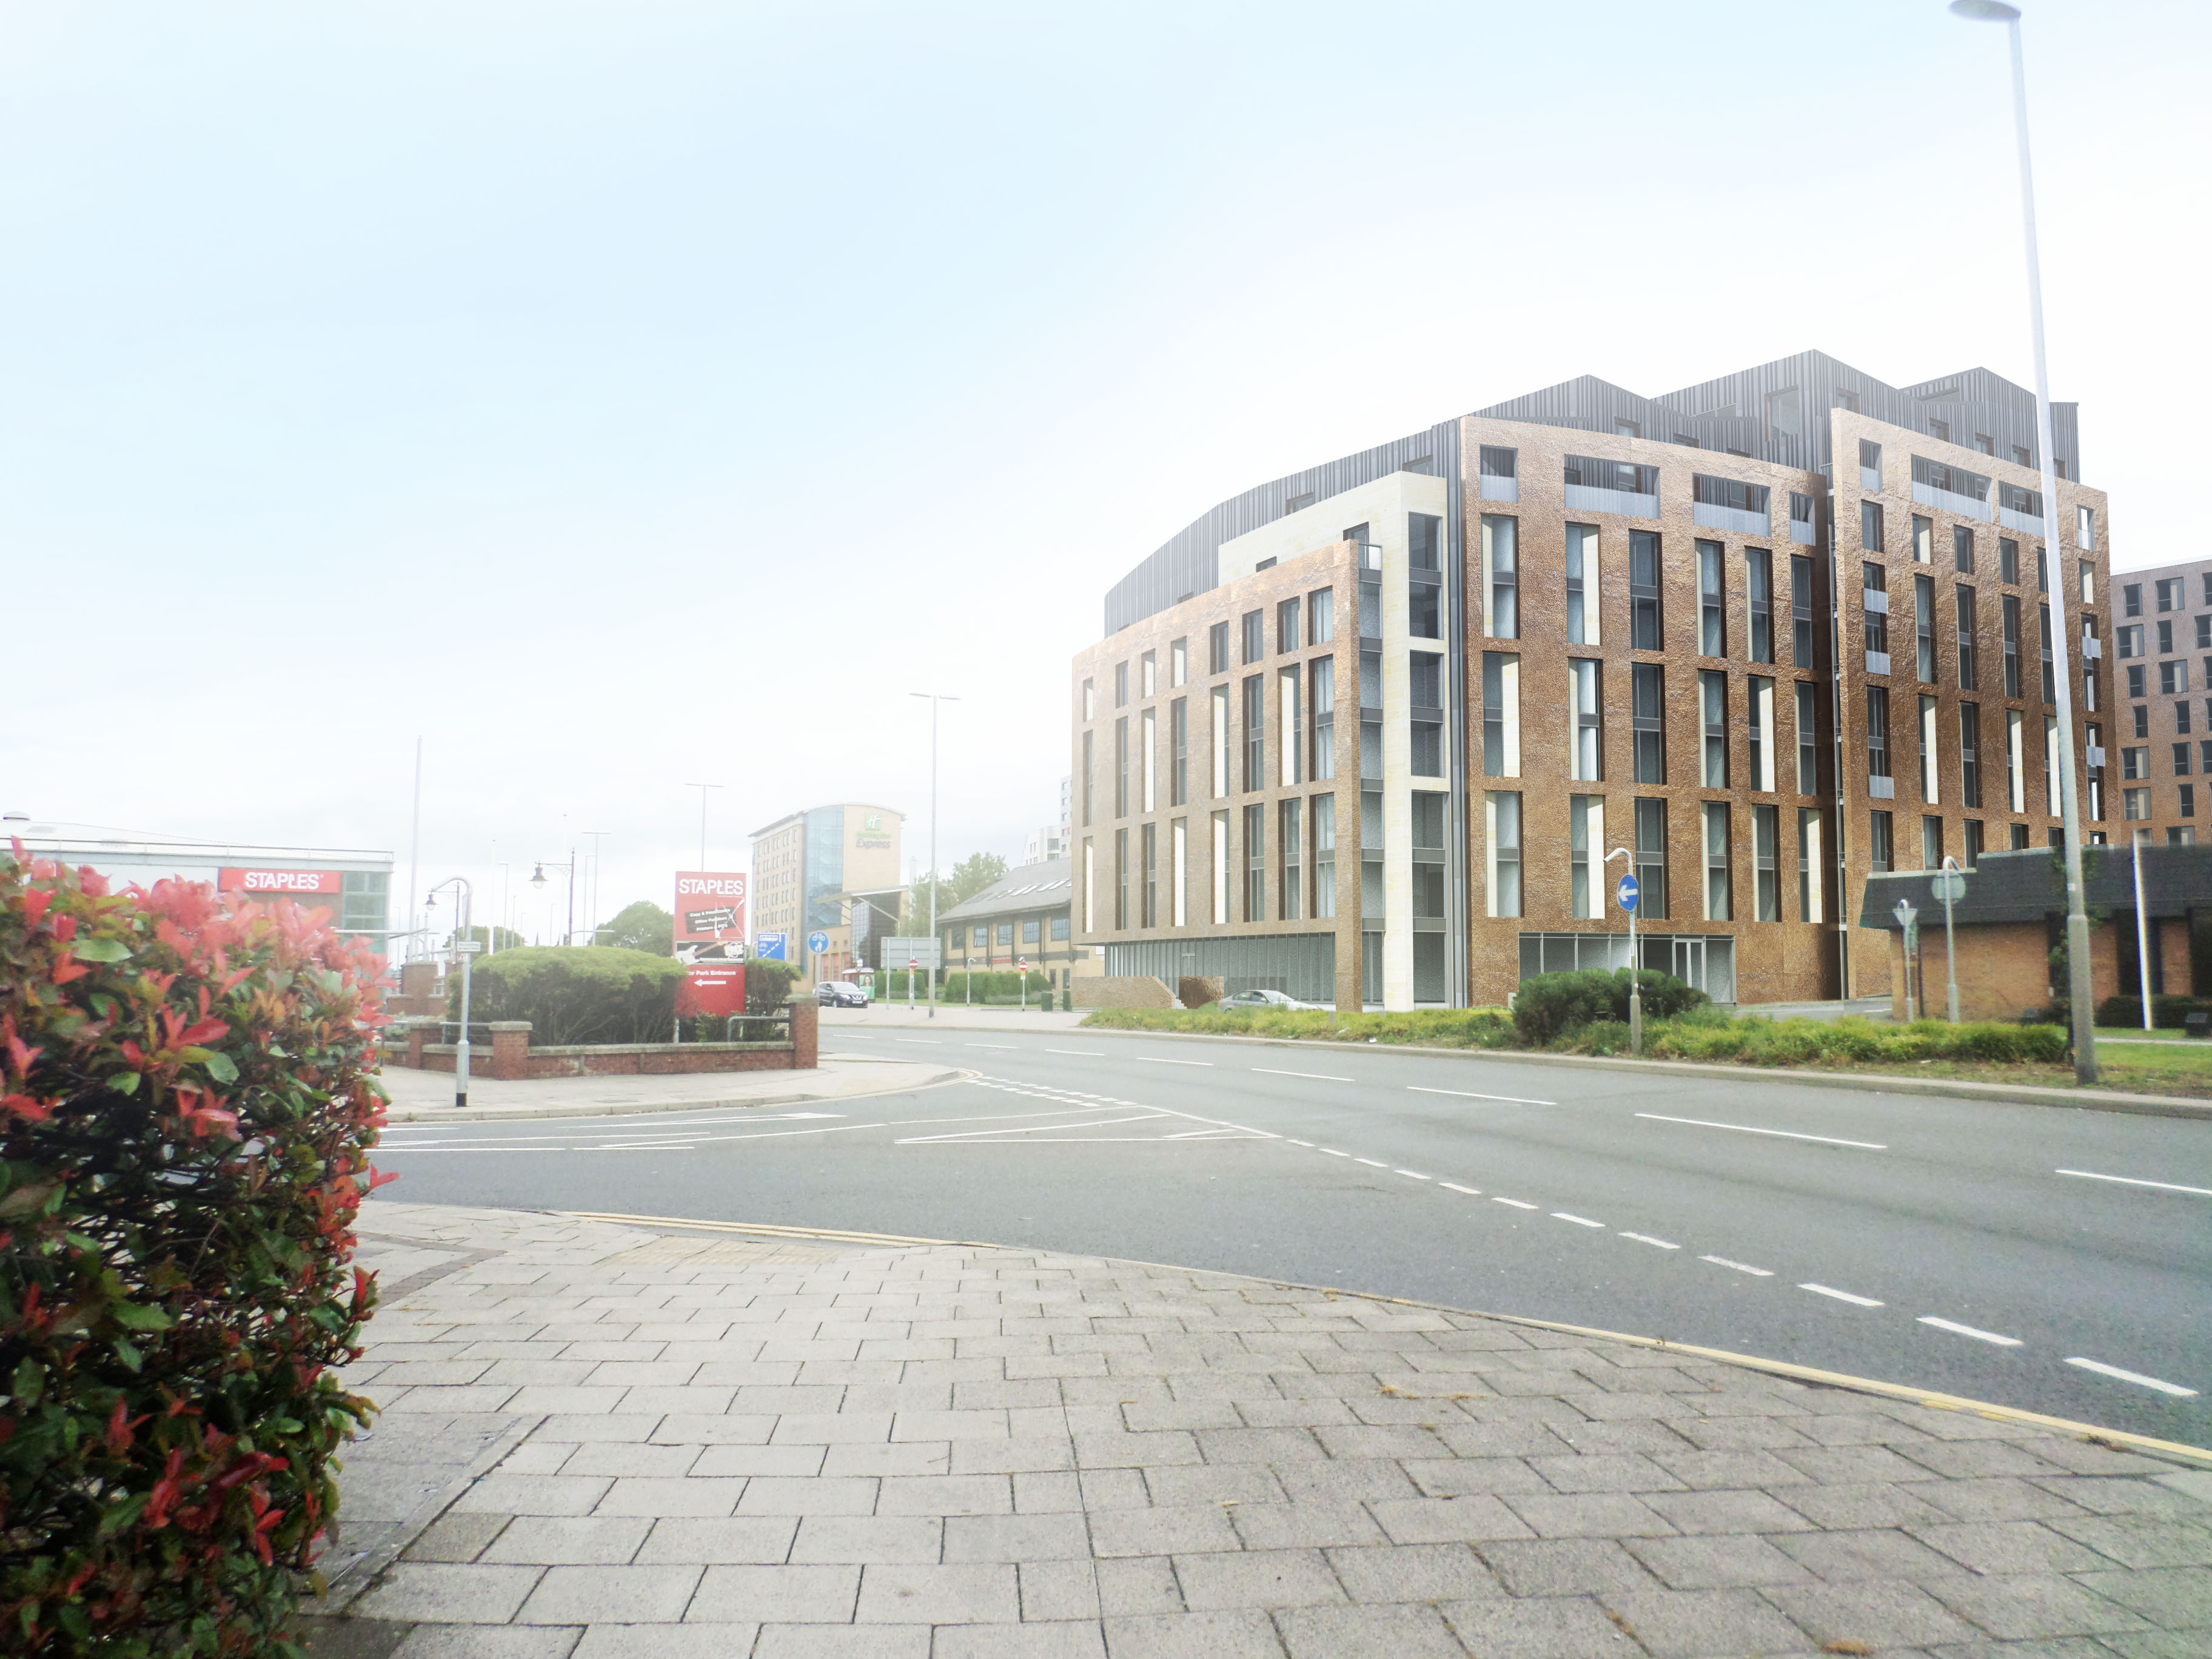 KMRE's Kirkstall Road development is underway after selling for £17.25m